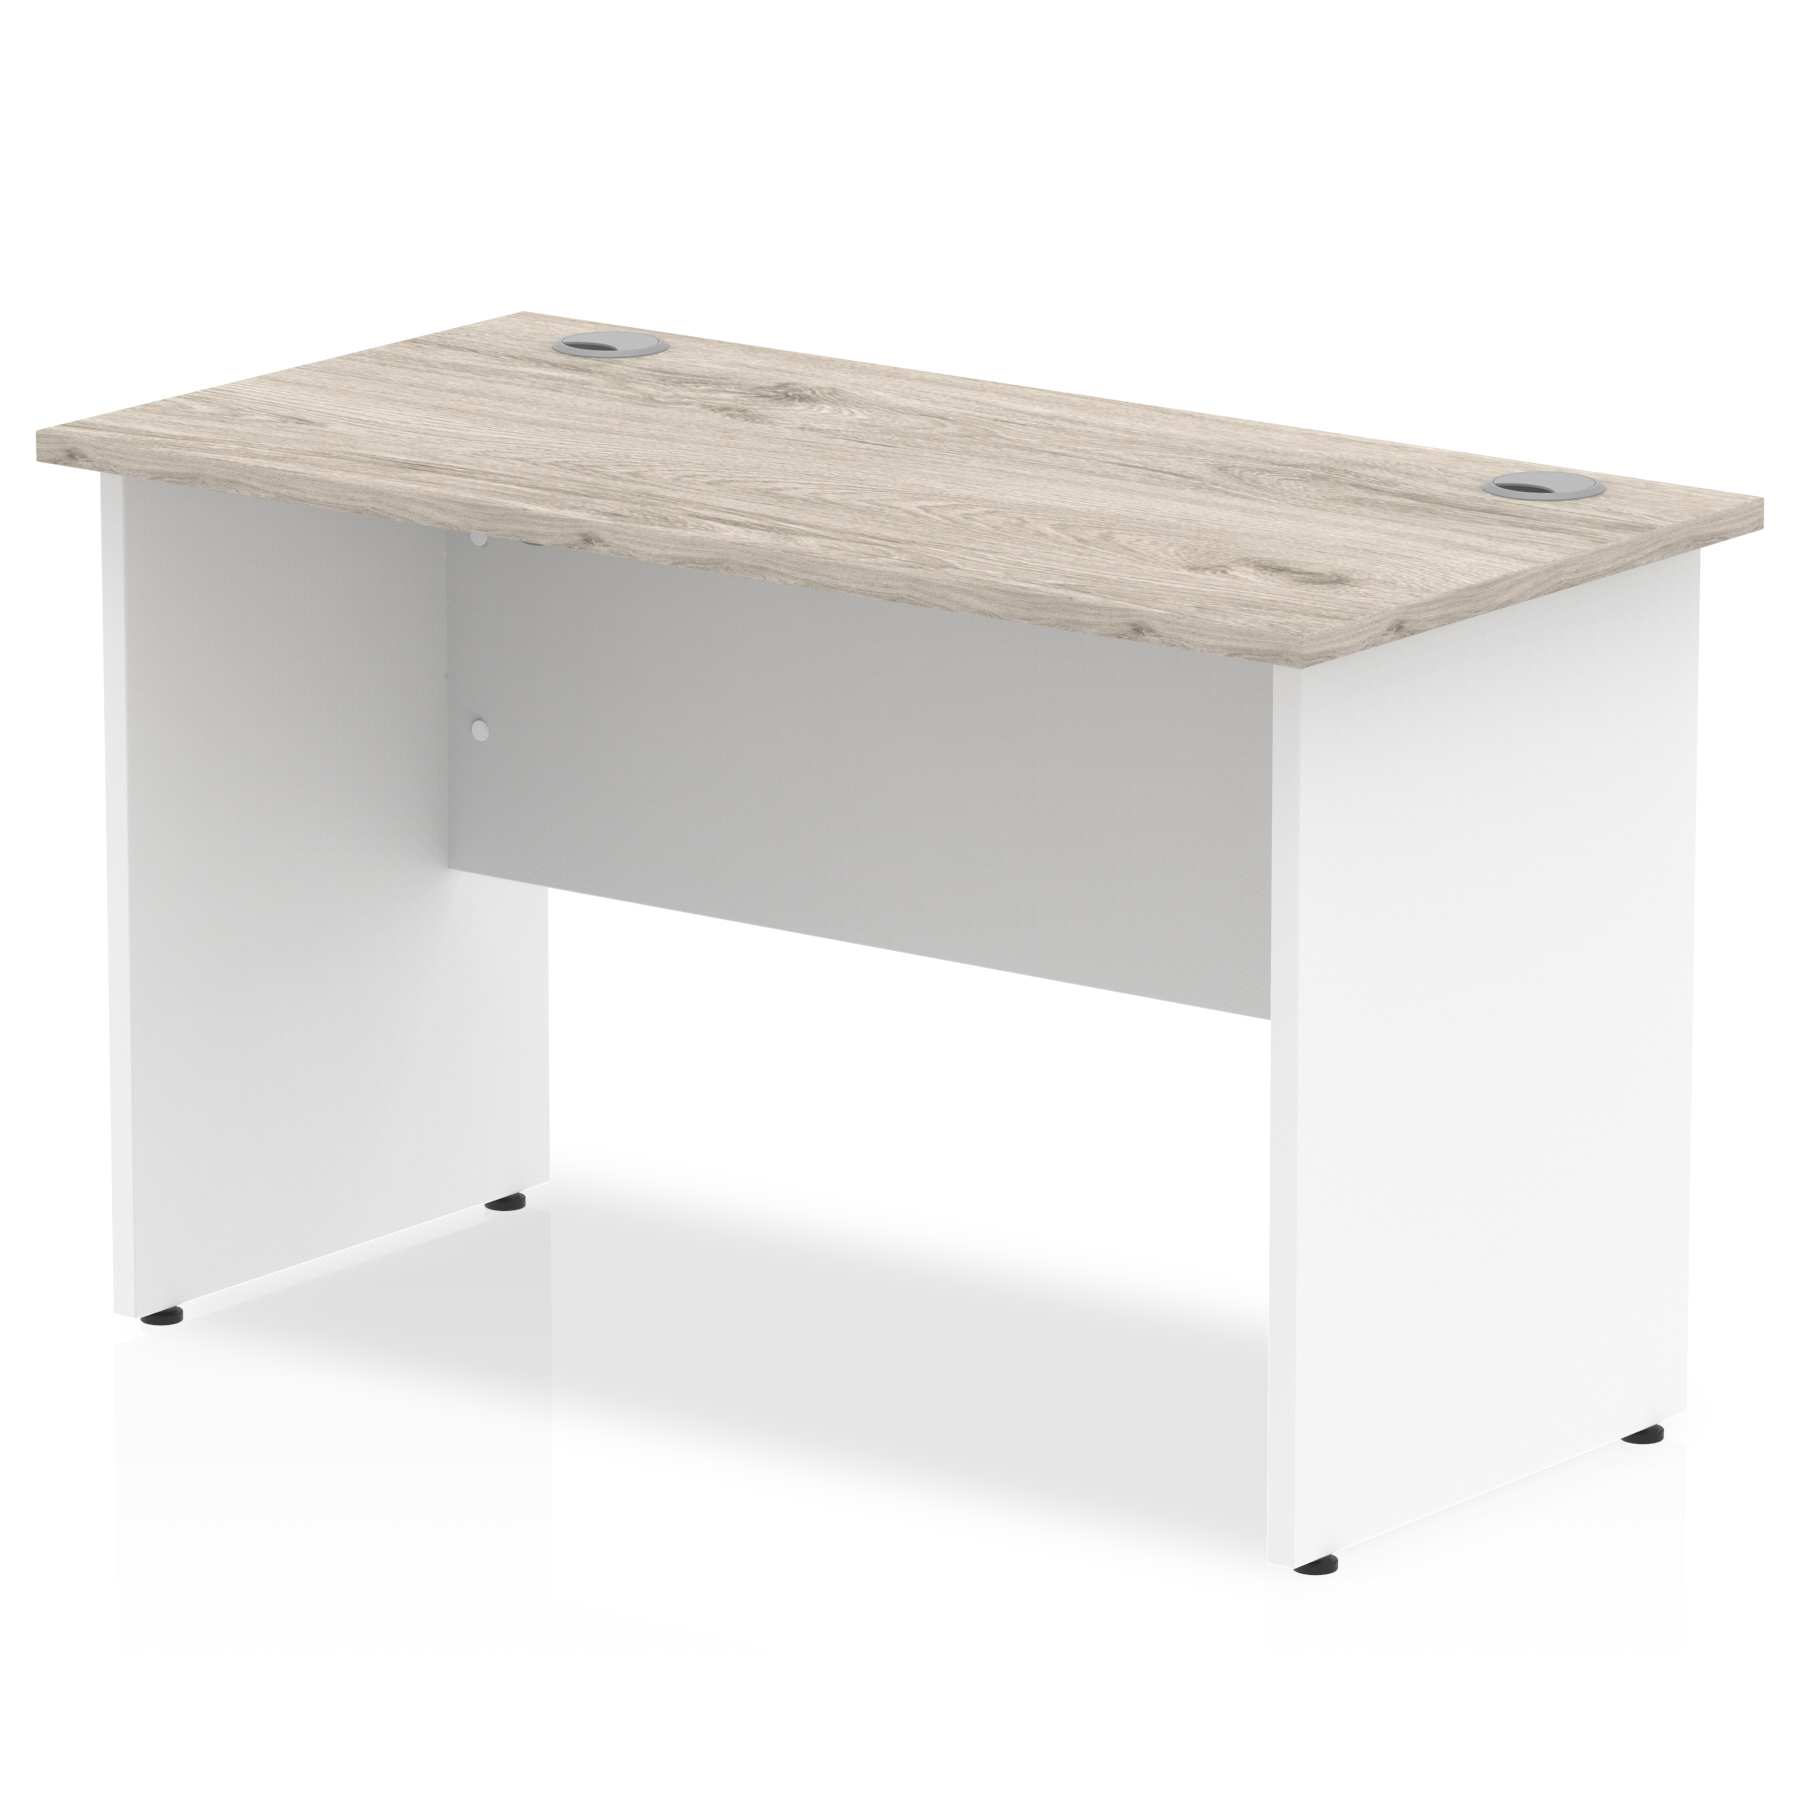 Desks Trexus Slim Rectangular Desk Panel End Leg 1200x600mm Grey Oak/White Ref TT000149